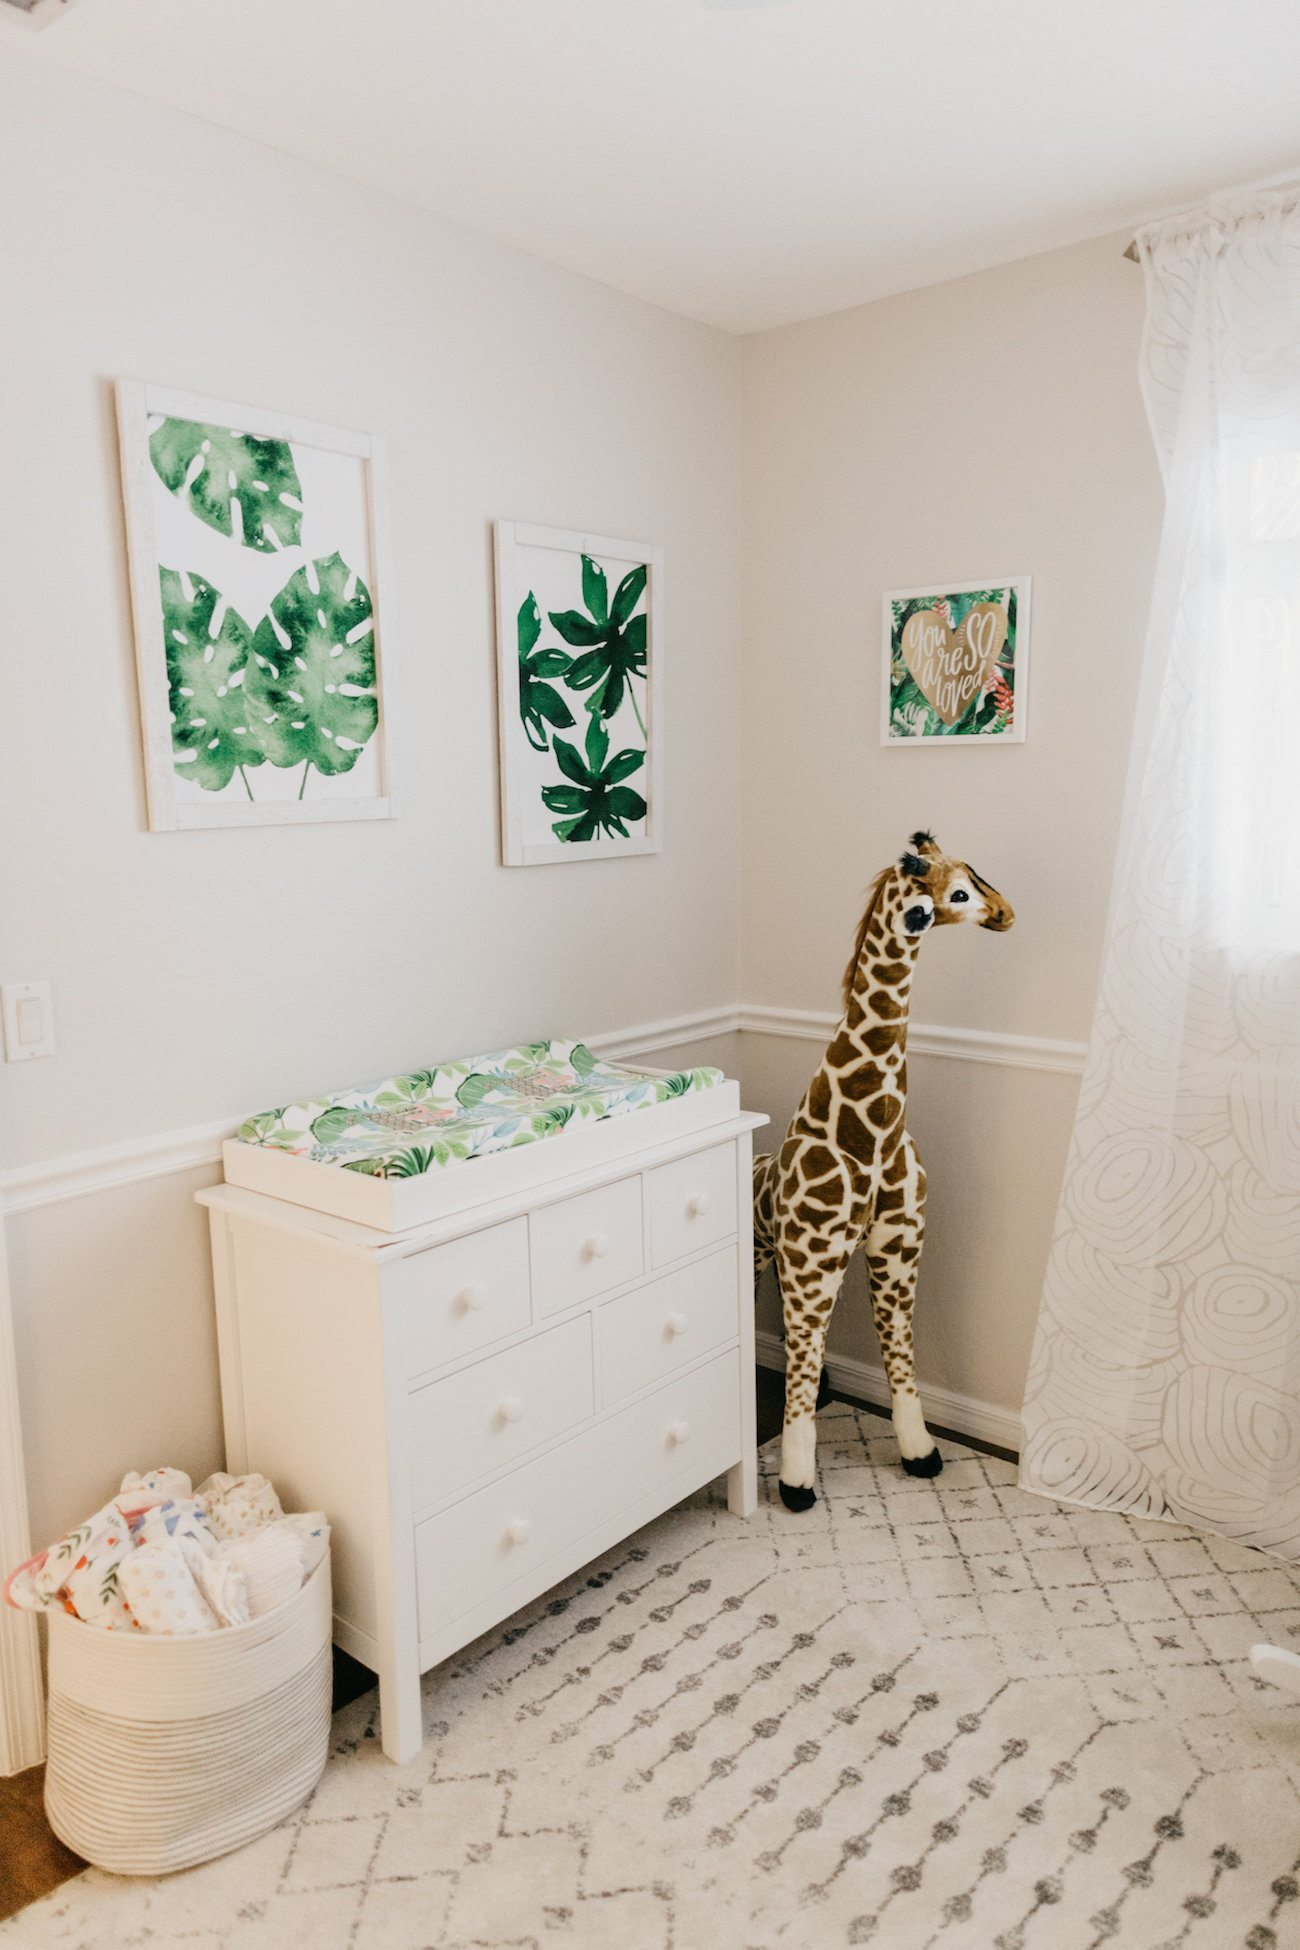 Florida Newborn Photos + Tropical Nursery Tour - Home Decor